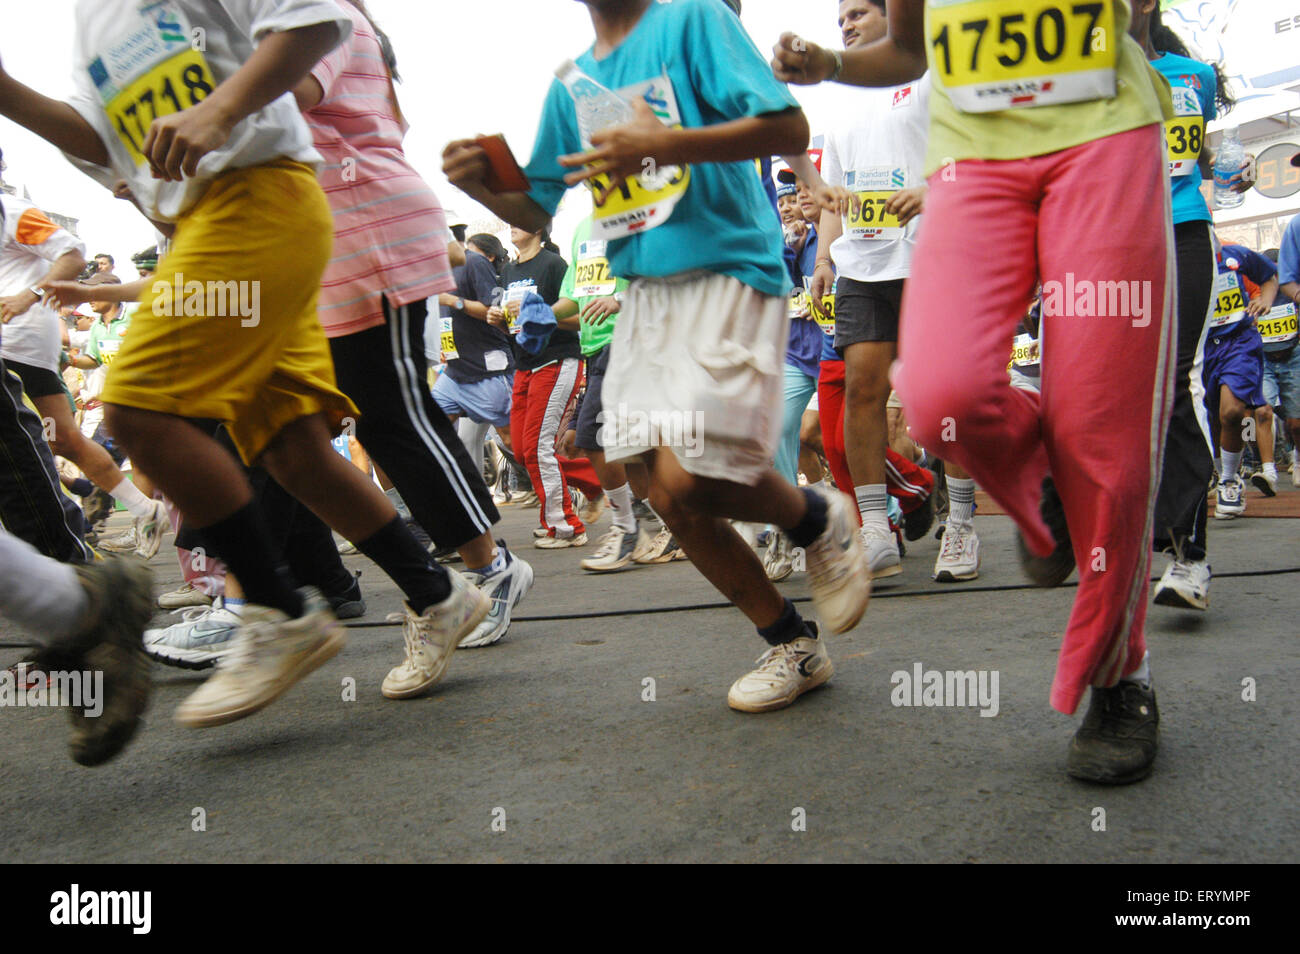 People running in international marathon 2005 in ; Bombay ; Mumbai ; Maharashtra ; India - Stock Image